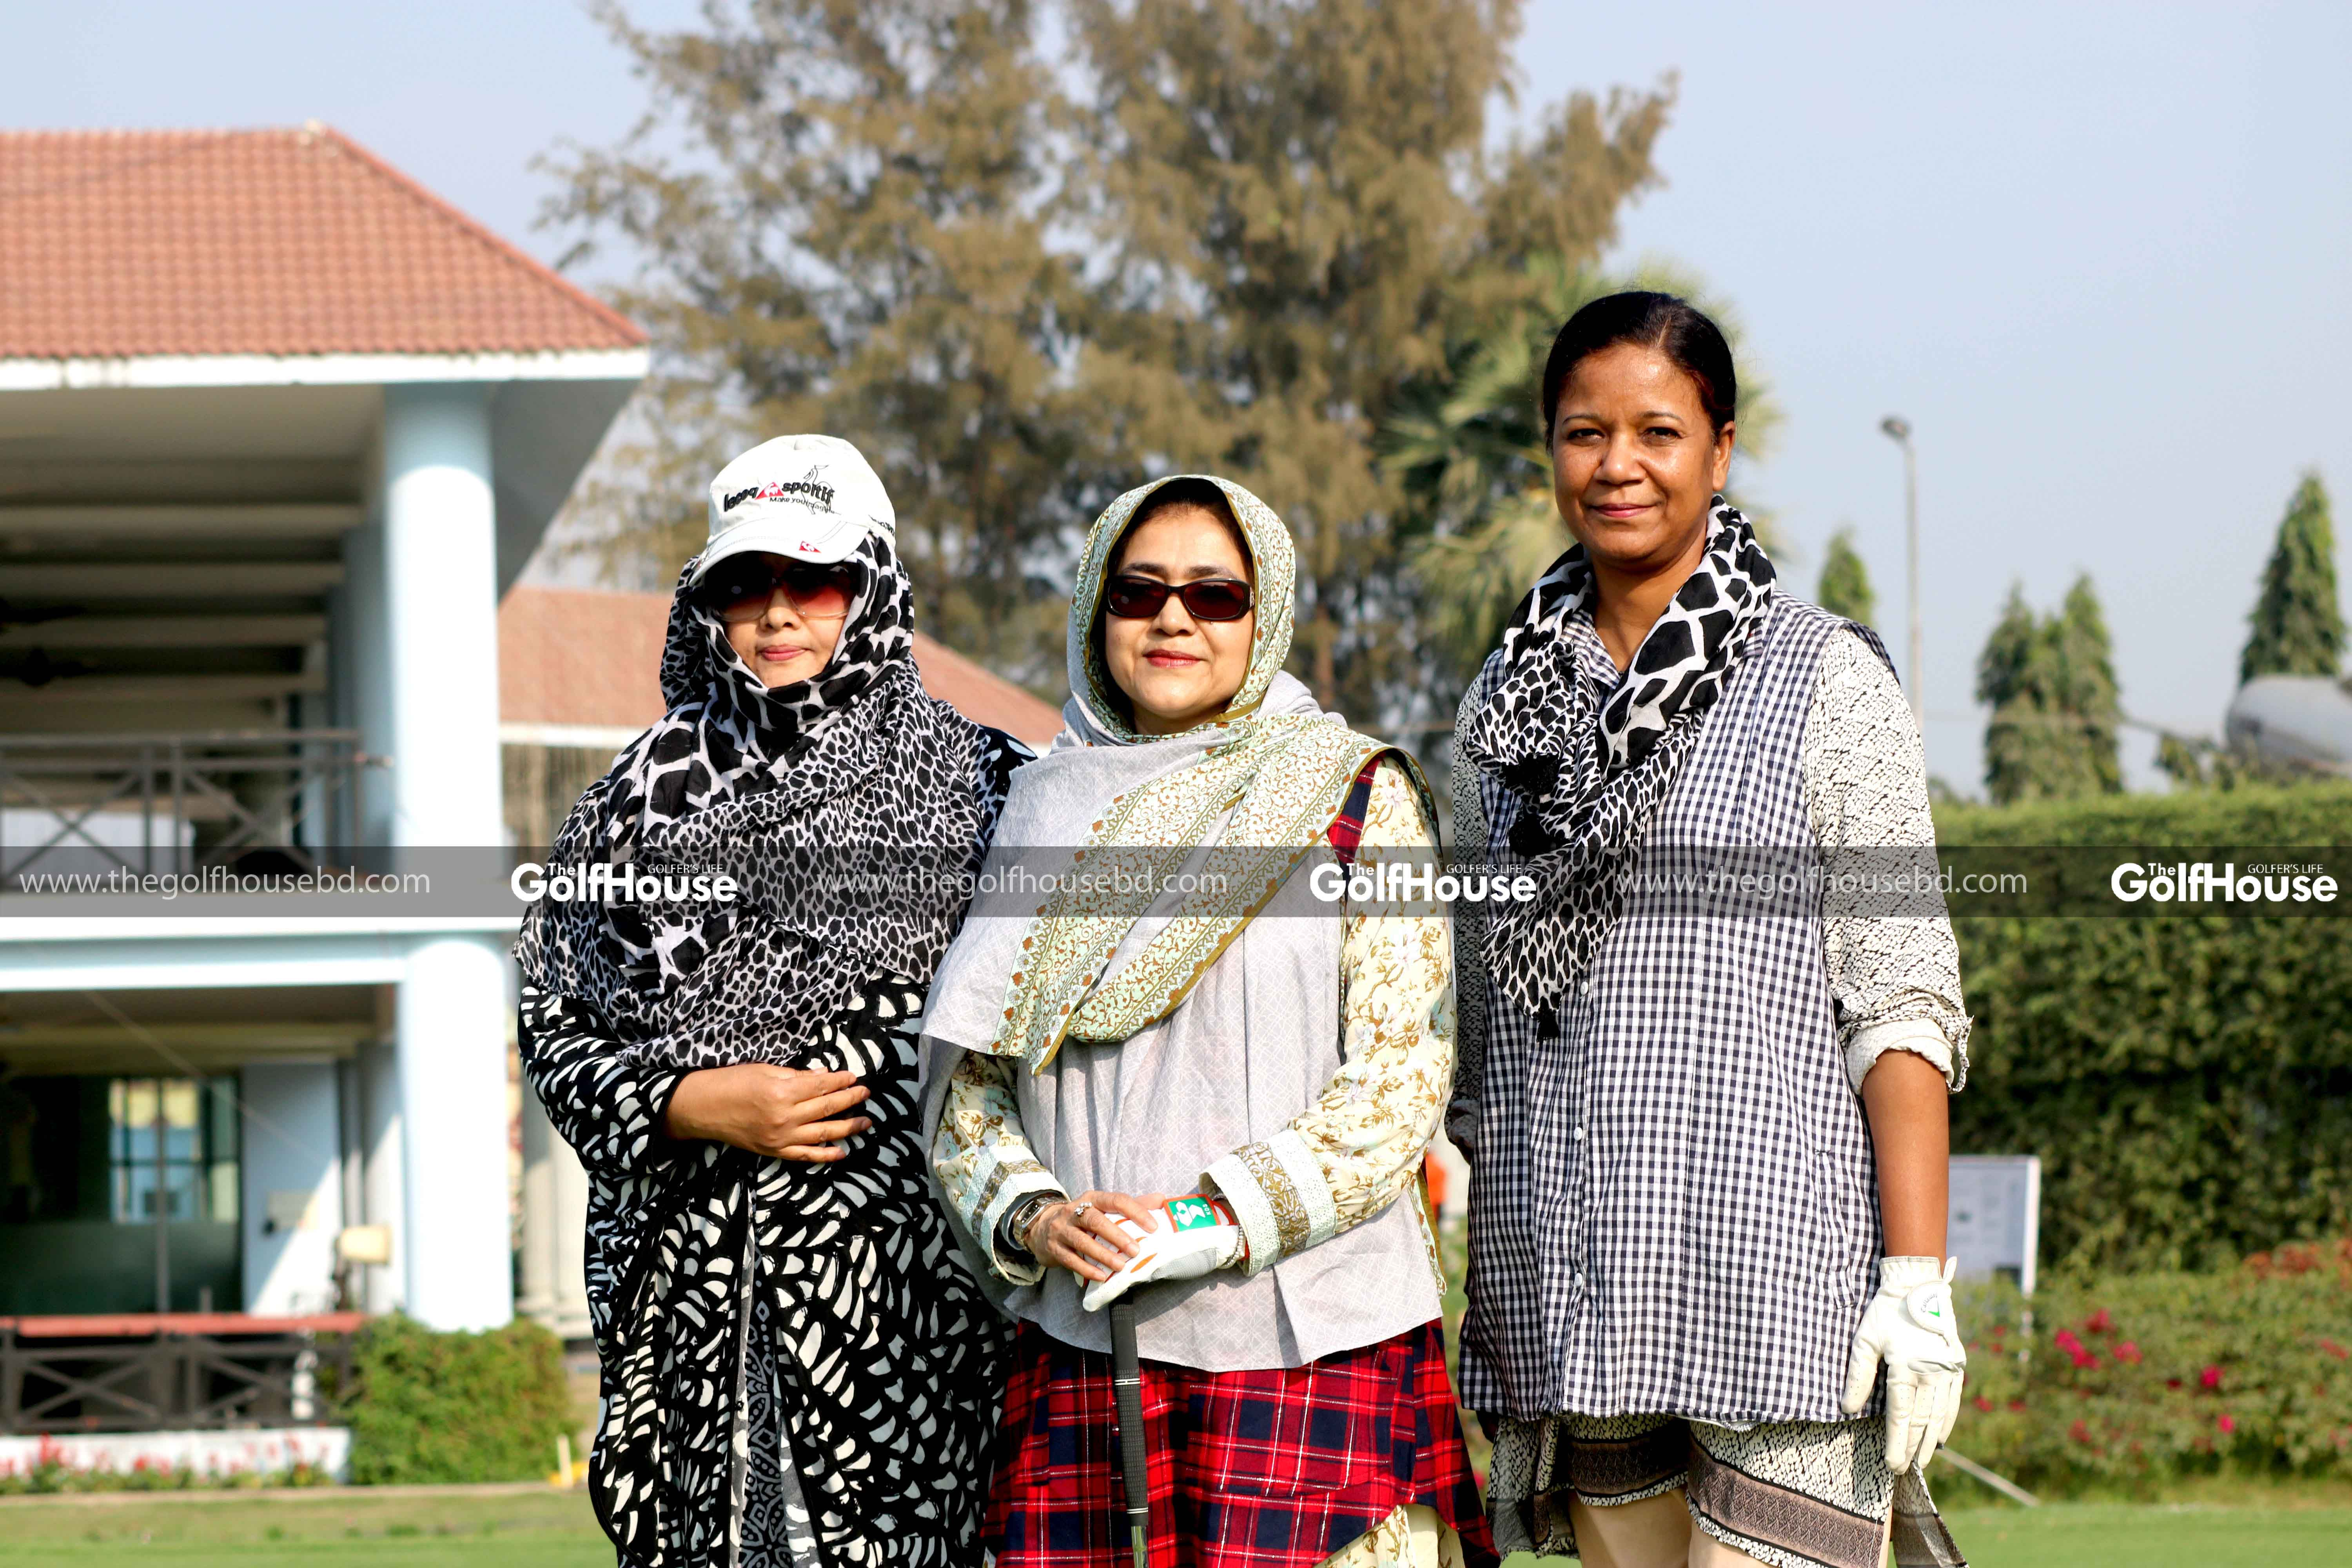 I got involved since women's golf started in Bangladesh. In 2002, AOC Zahur Bhai started women's golf. He used to look after everything and did a lot for the development.